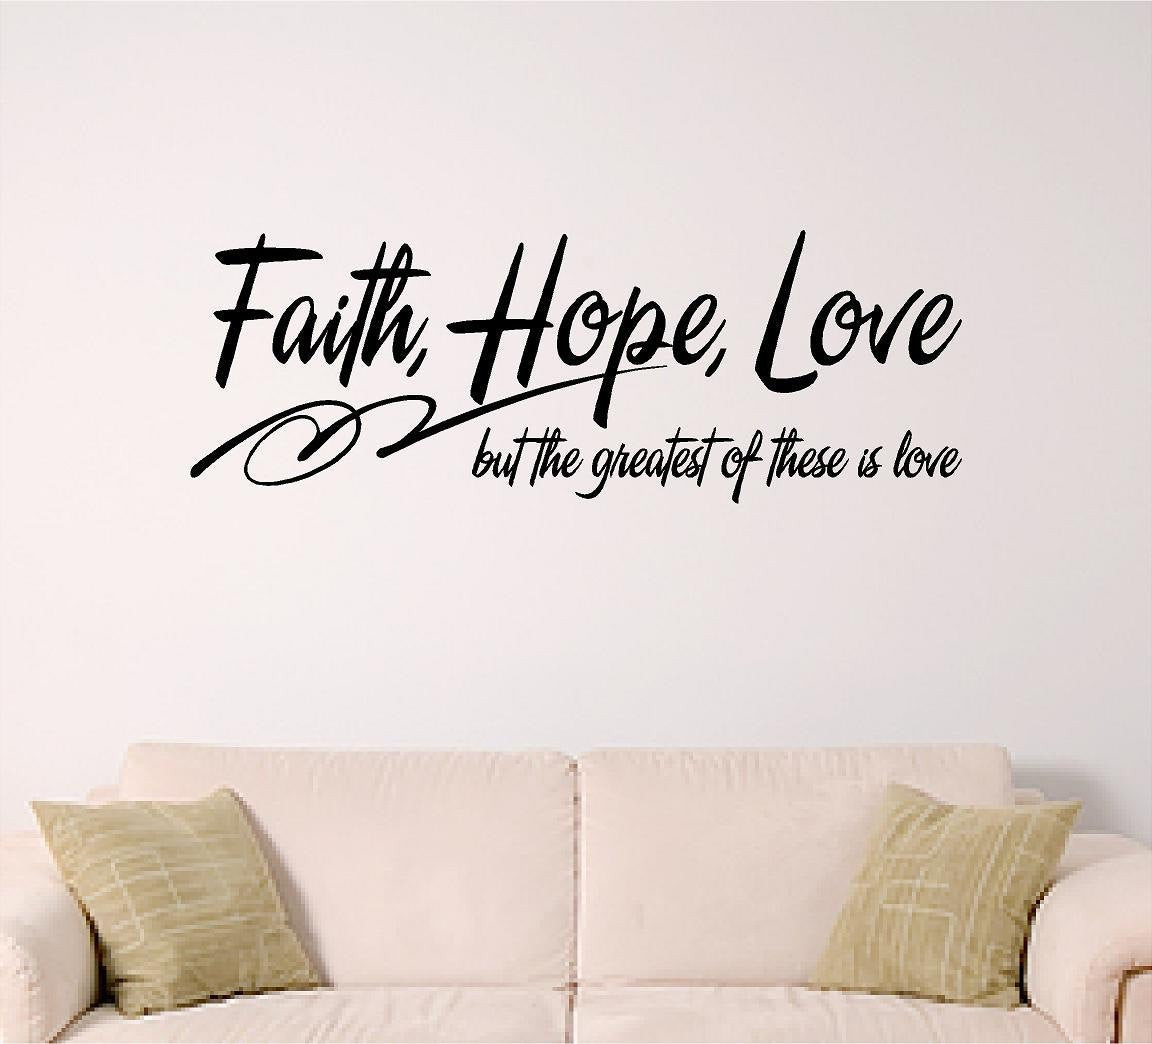 Quotes About Faith And Love  Bible Verse Wall Art Faith Hope Love Wall Decal